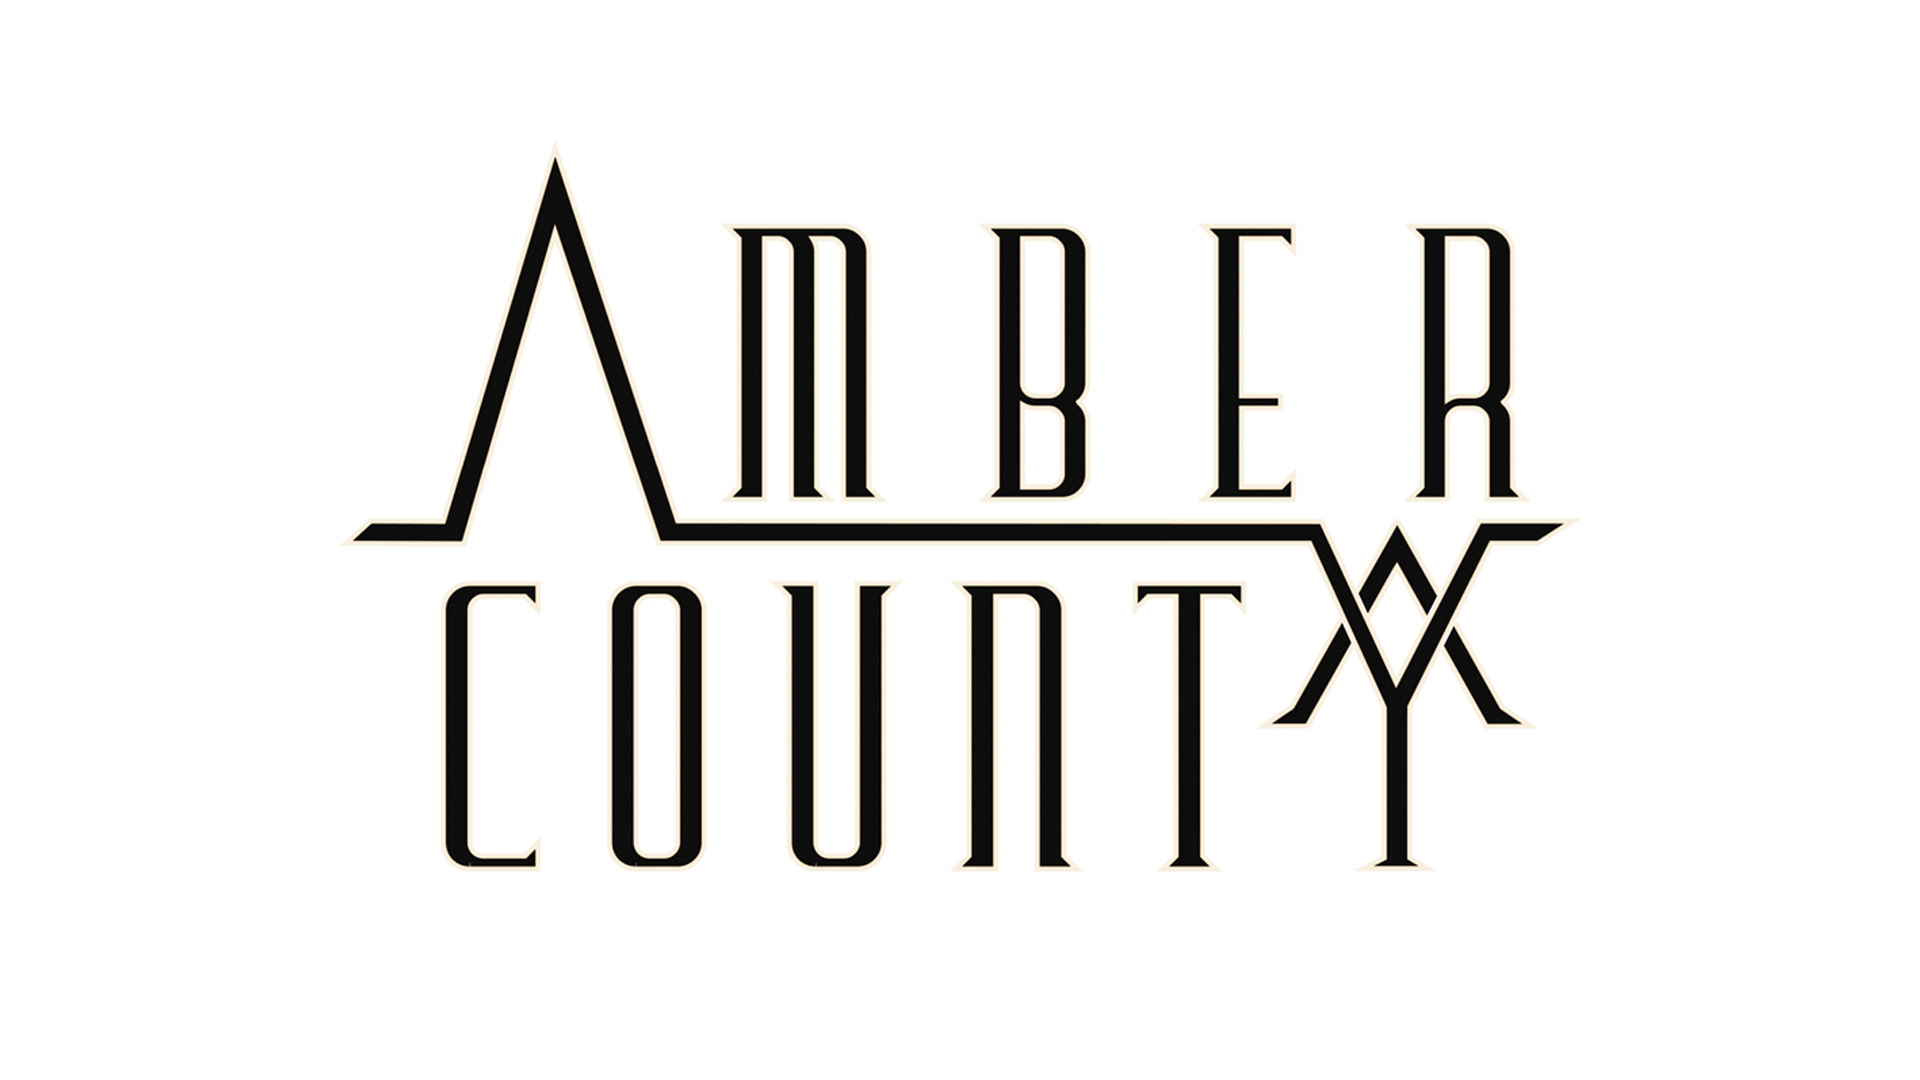 Amber County